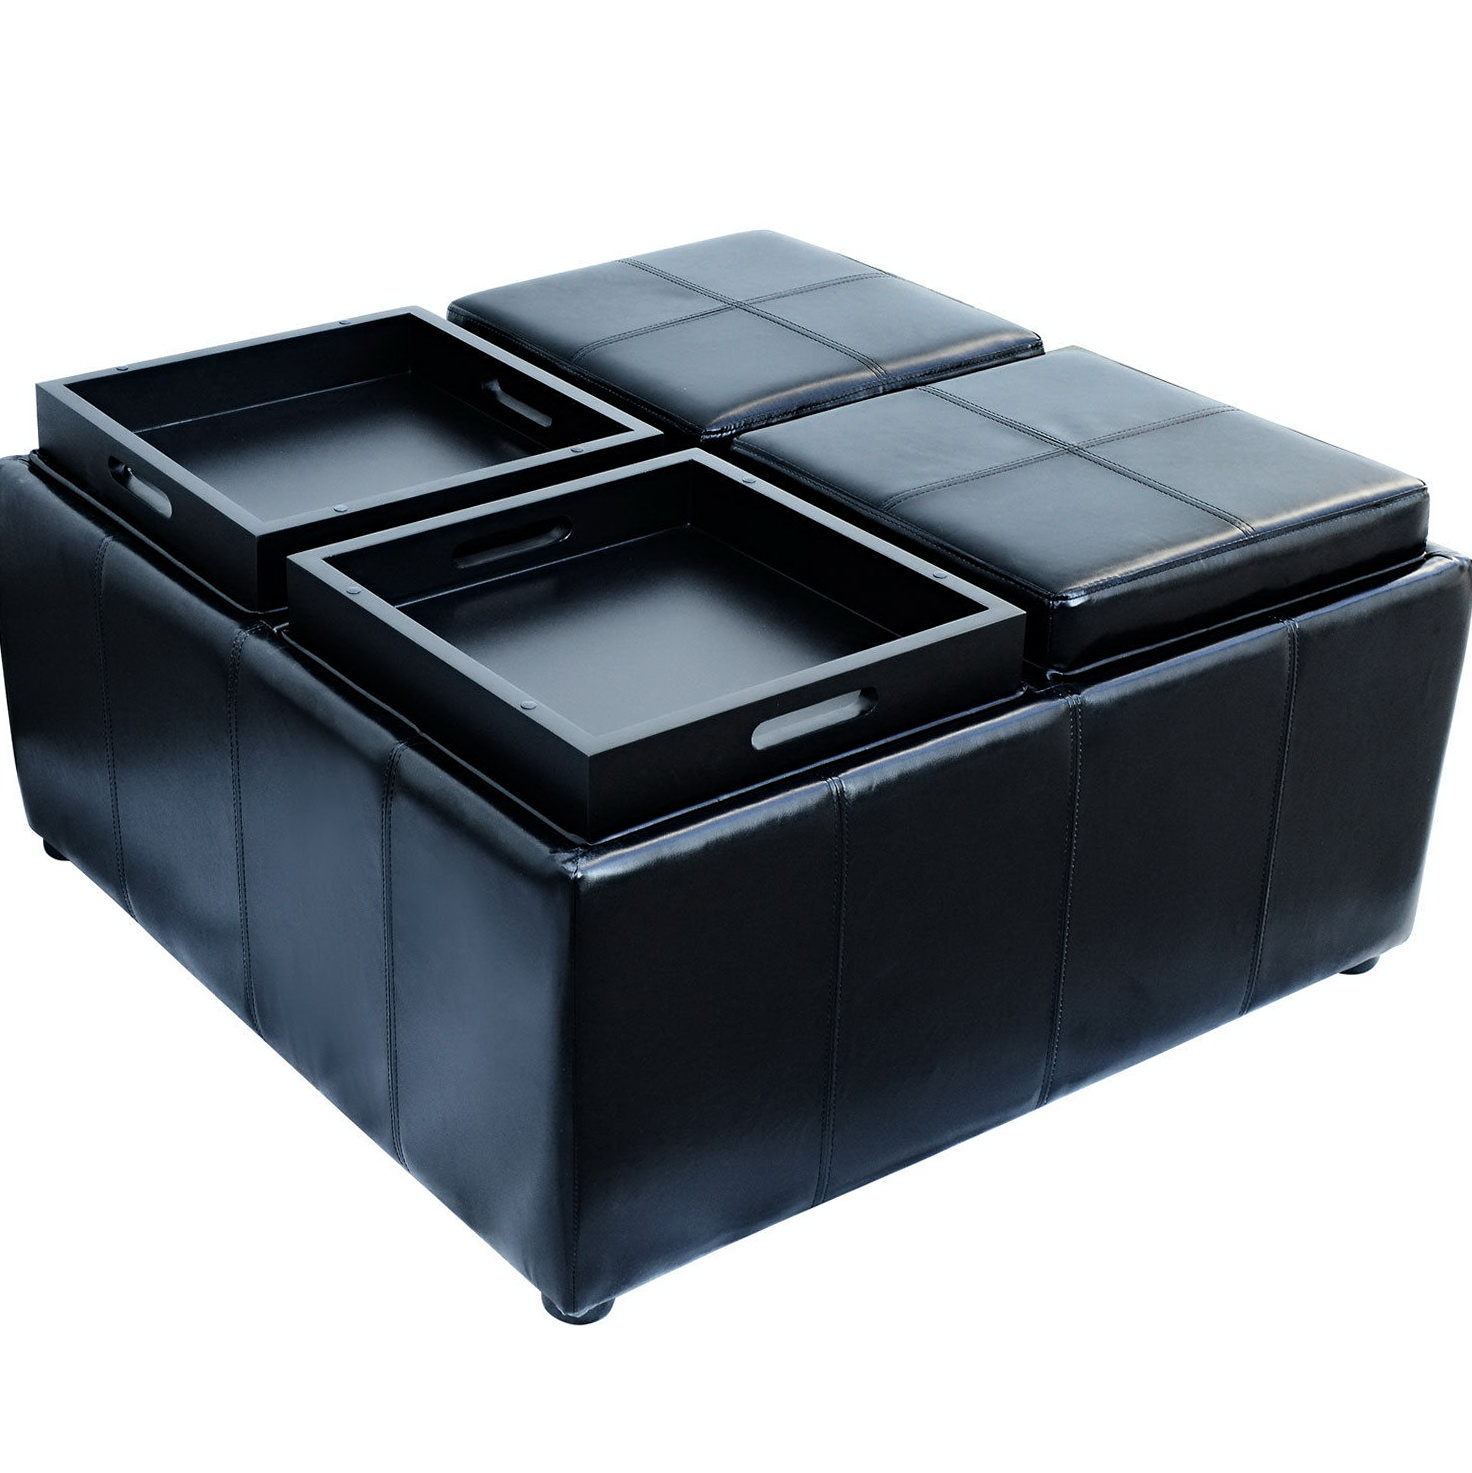 Black Leather Storage Ottoman With 4 Trays Home Design Ideas